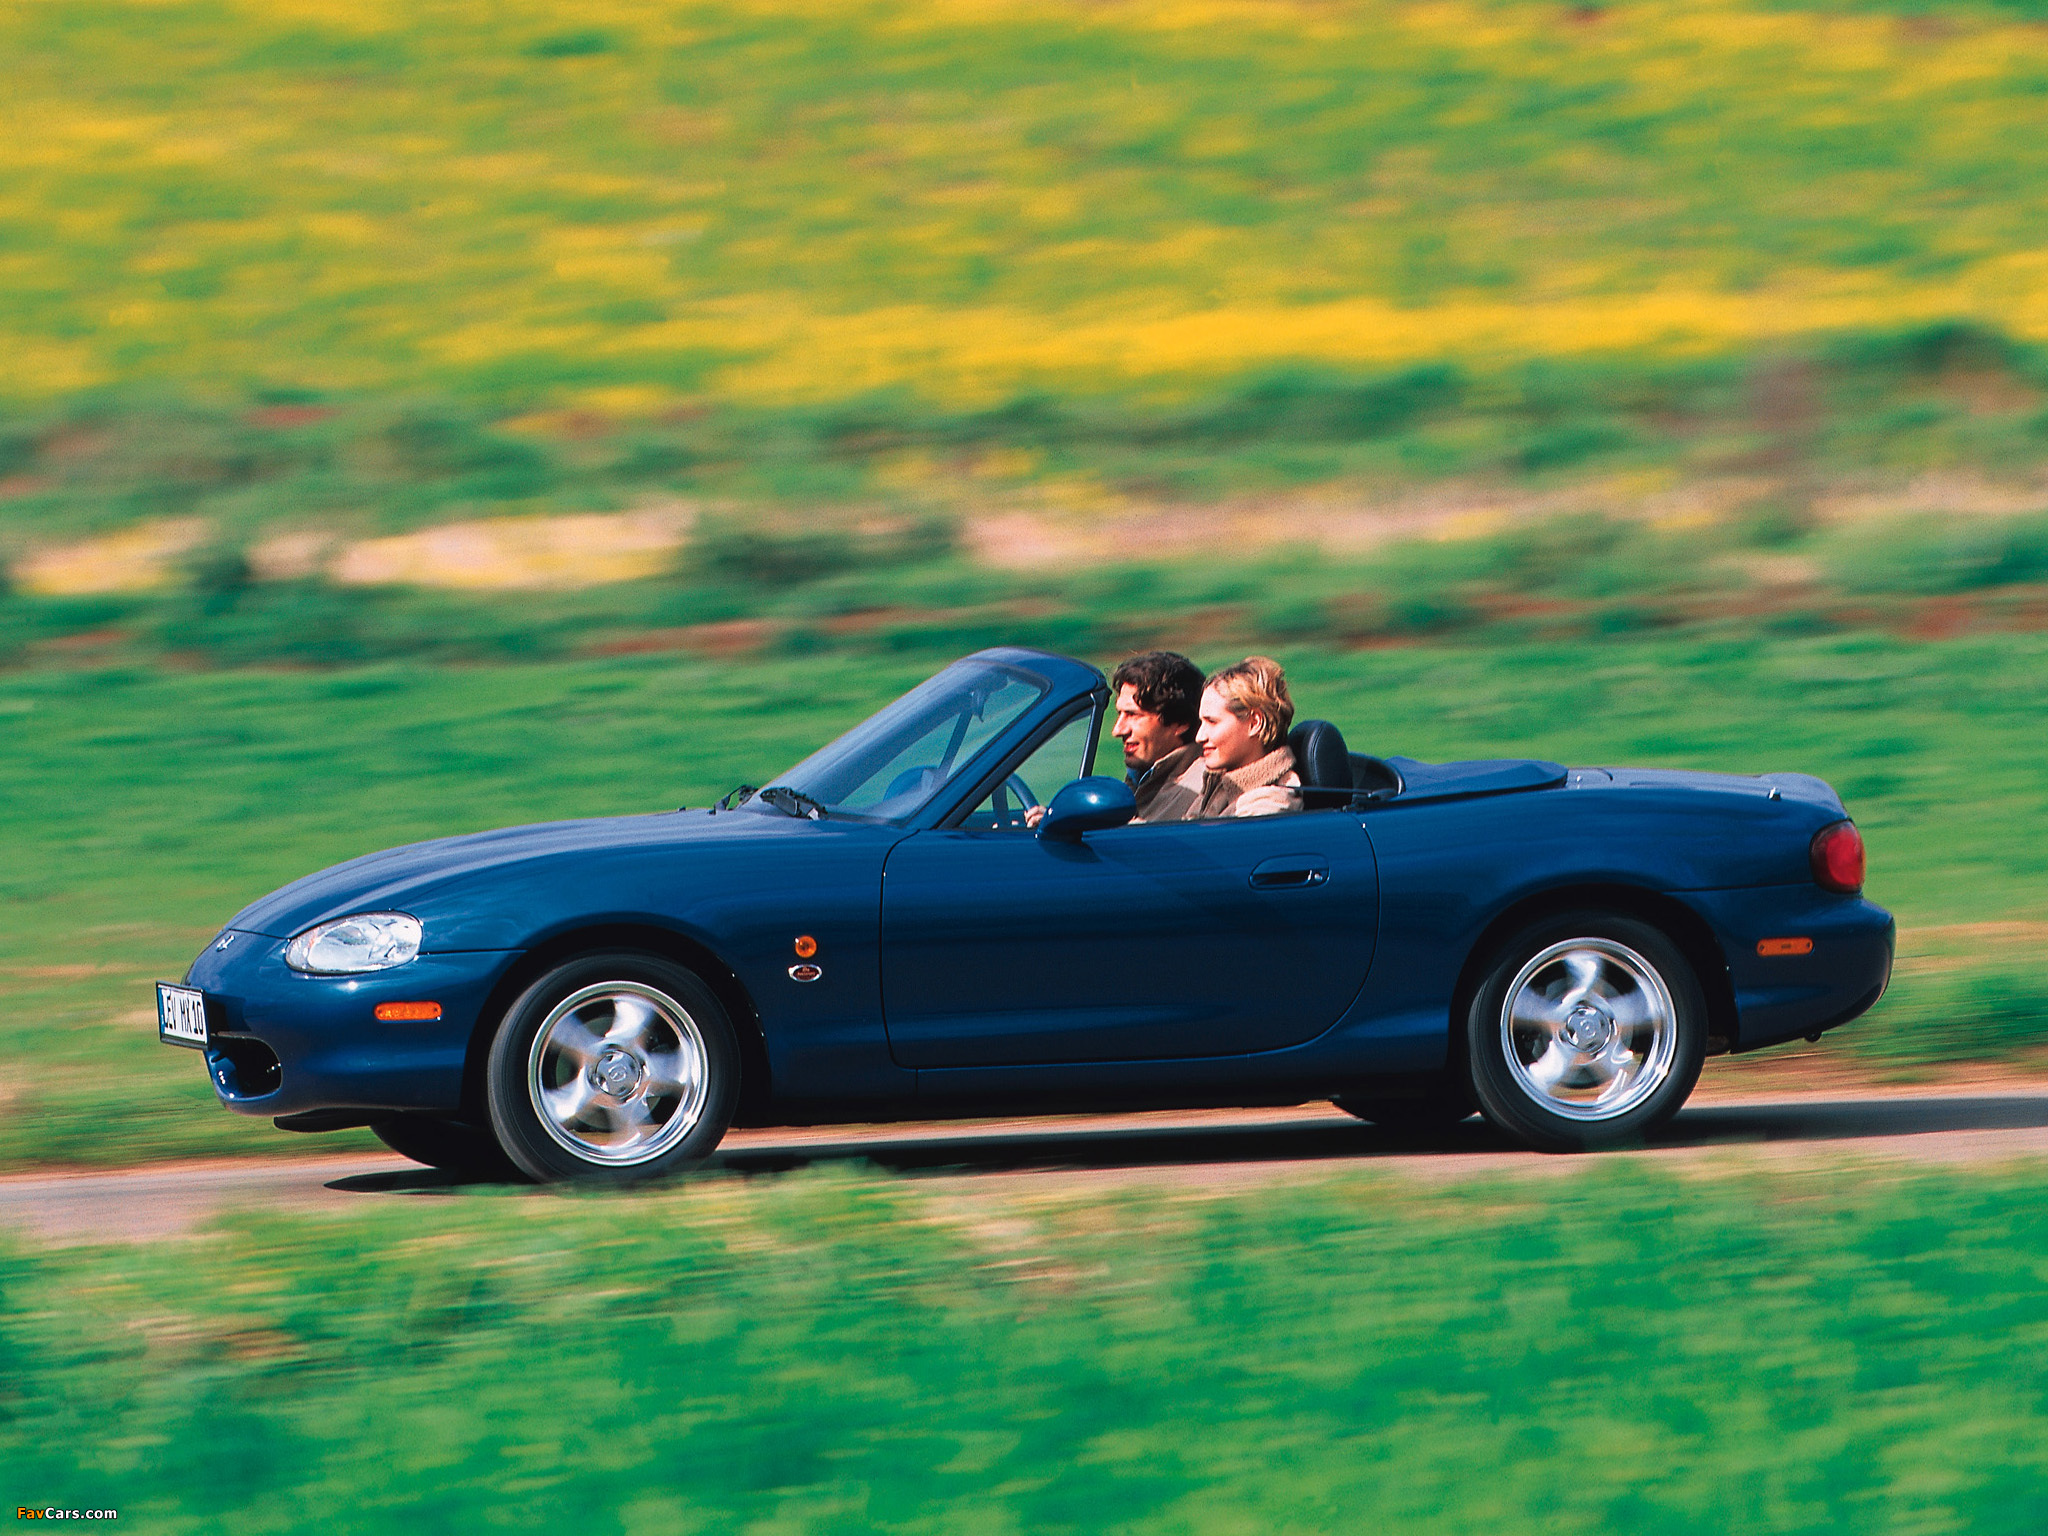 mazda mx 5 10th anniversary nb 1999 pictures 2048x1536. Black Bedroom Furniture Sets. Home Design Ideas